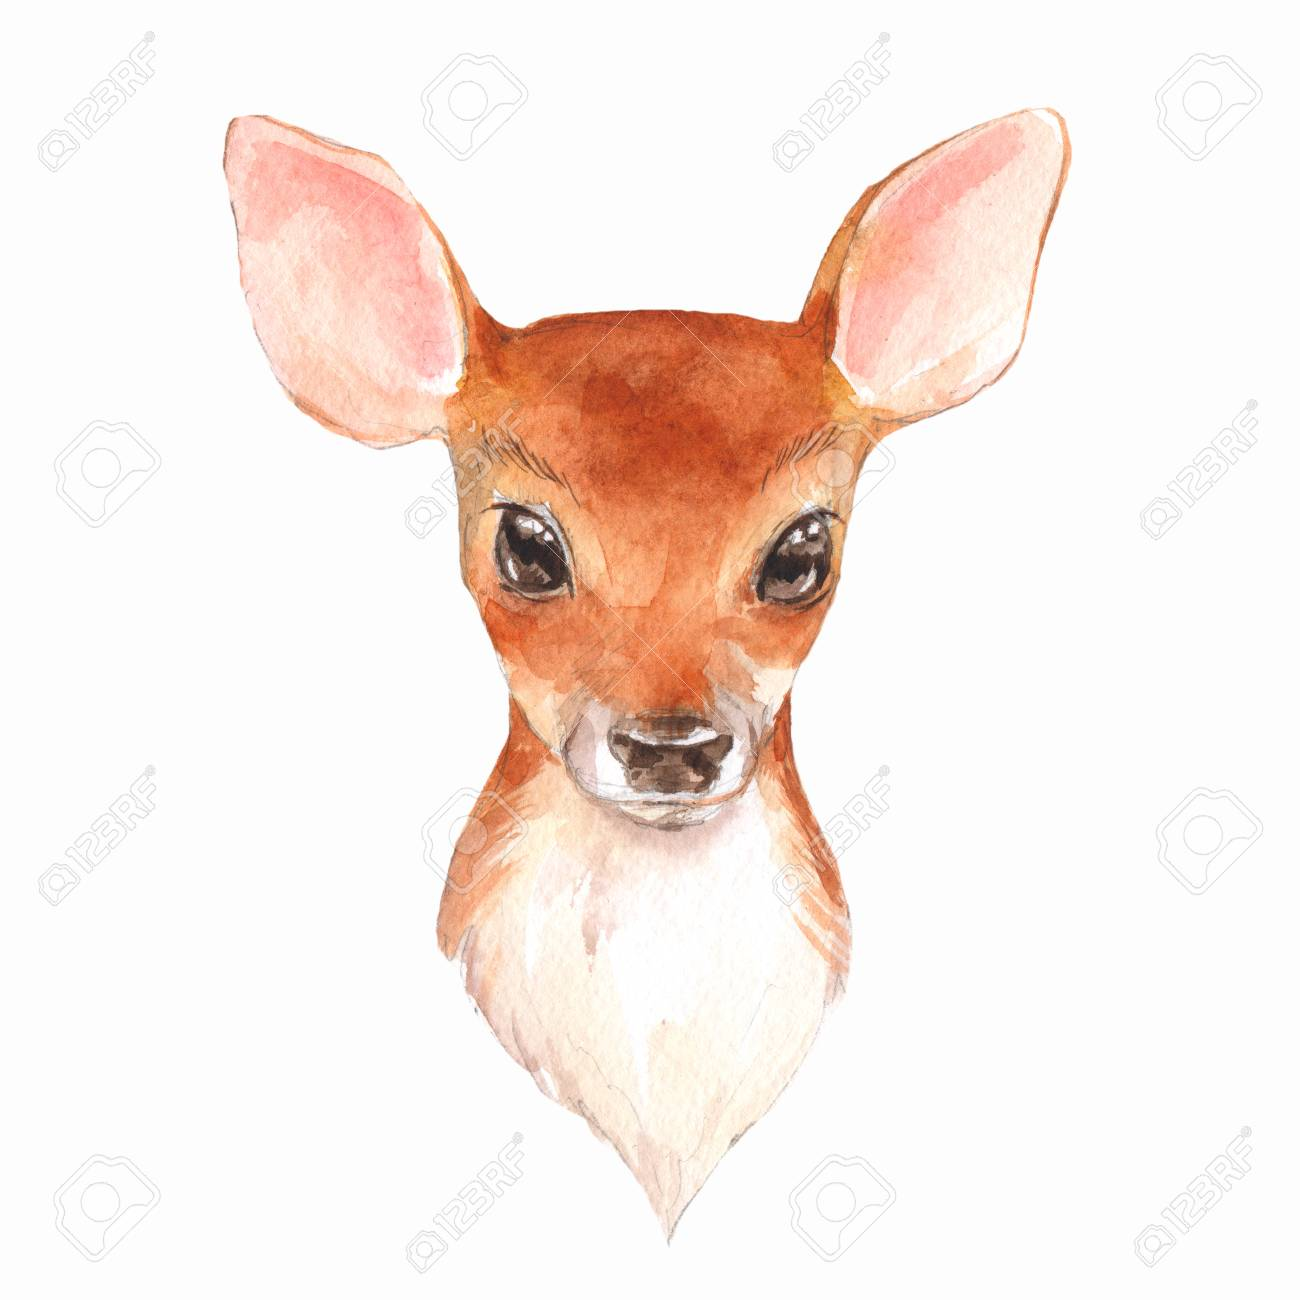 Baby Deer  Hand Drawn Cute Fawn  Watercolor Illustration Stock